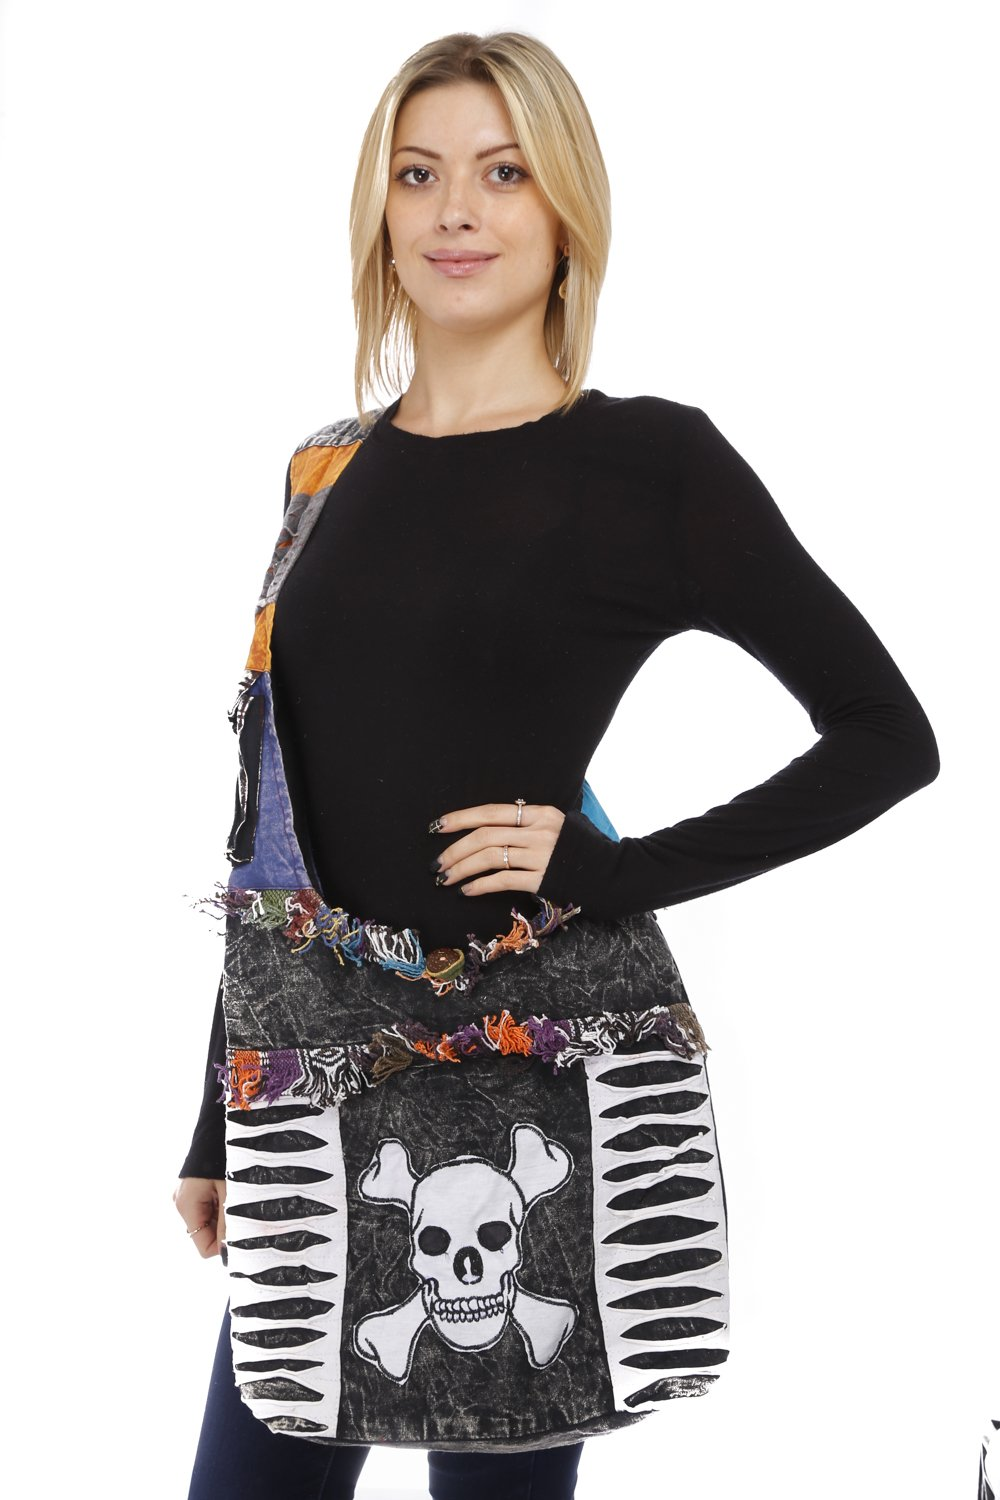 Gilbins Hippie Boho Slouch Bag Sling nepalese cross body bag 100% cotton Skull